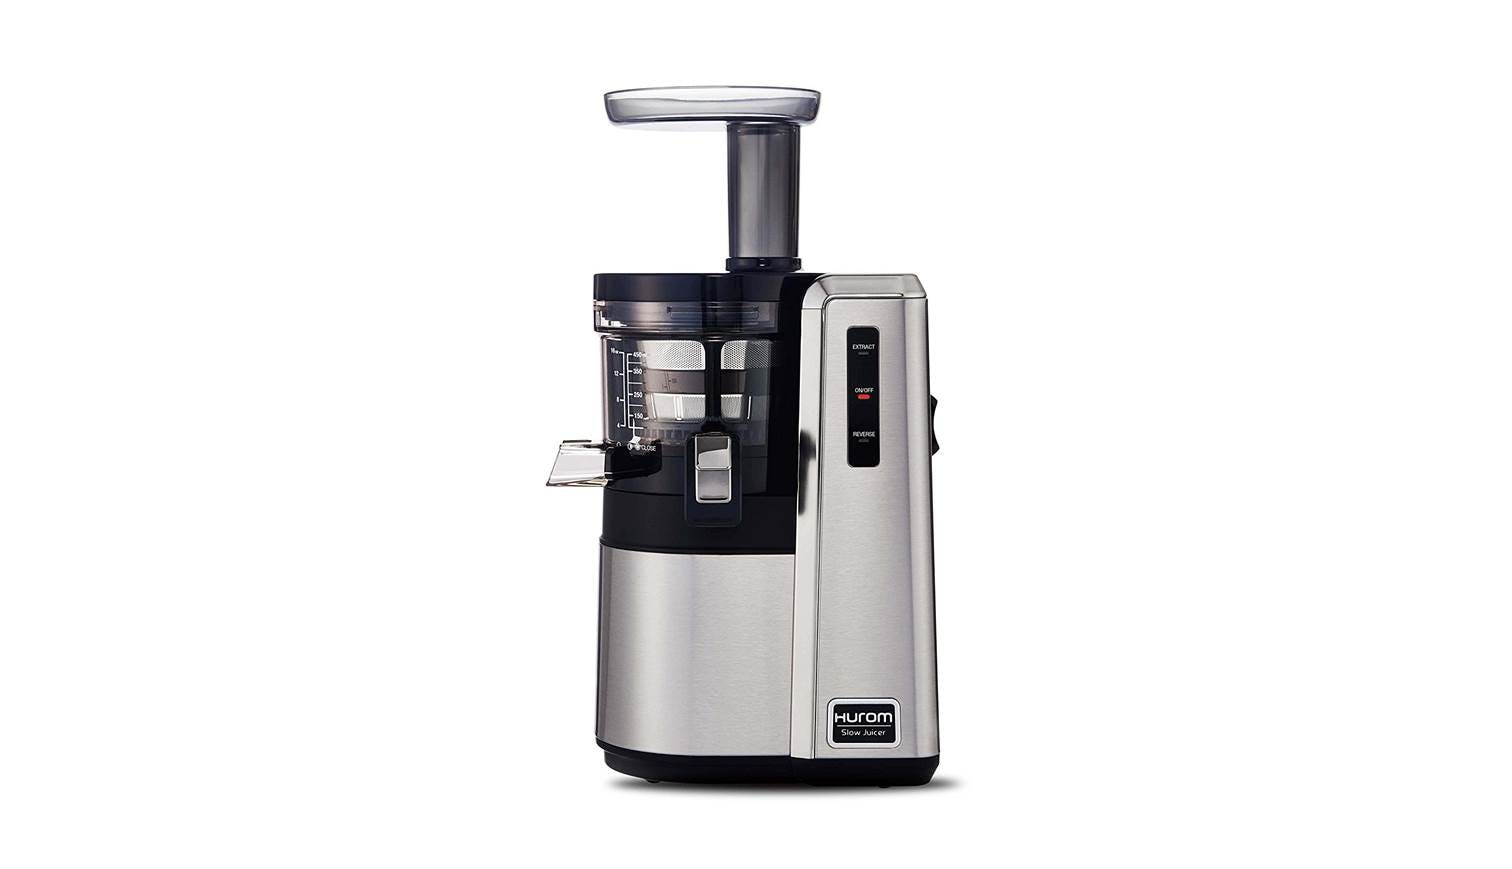 Hurom Slow Juicer Weight : Hurom HZ2500S Slow Juicer Harvey Norman Singapore